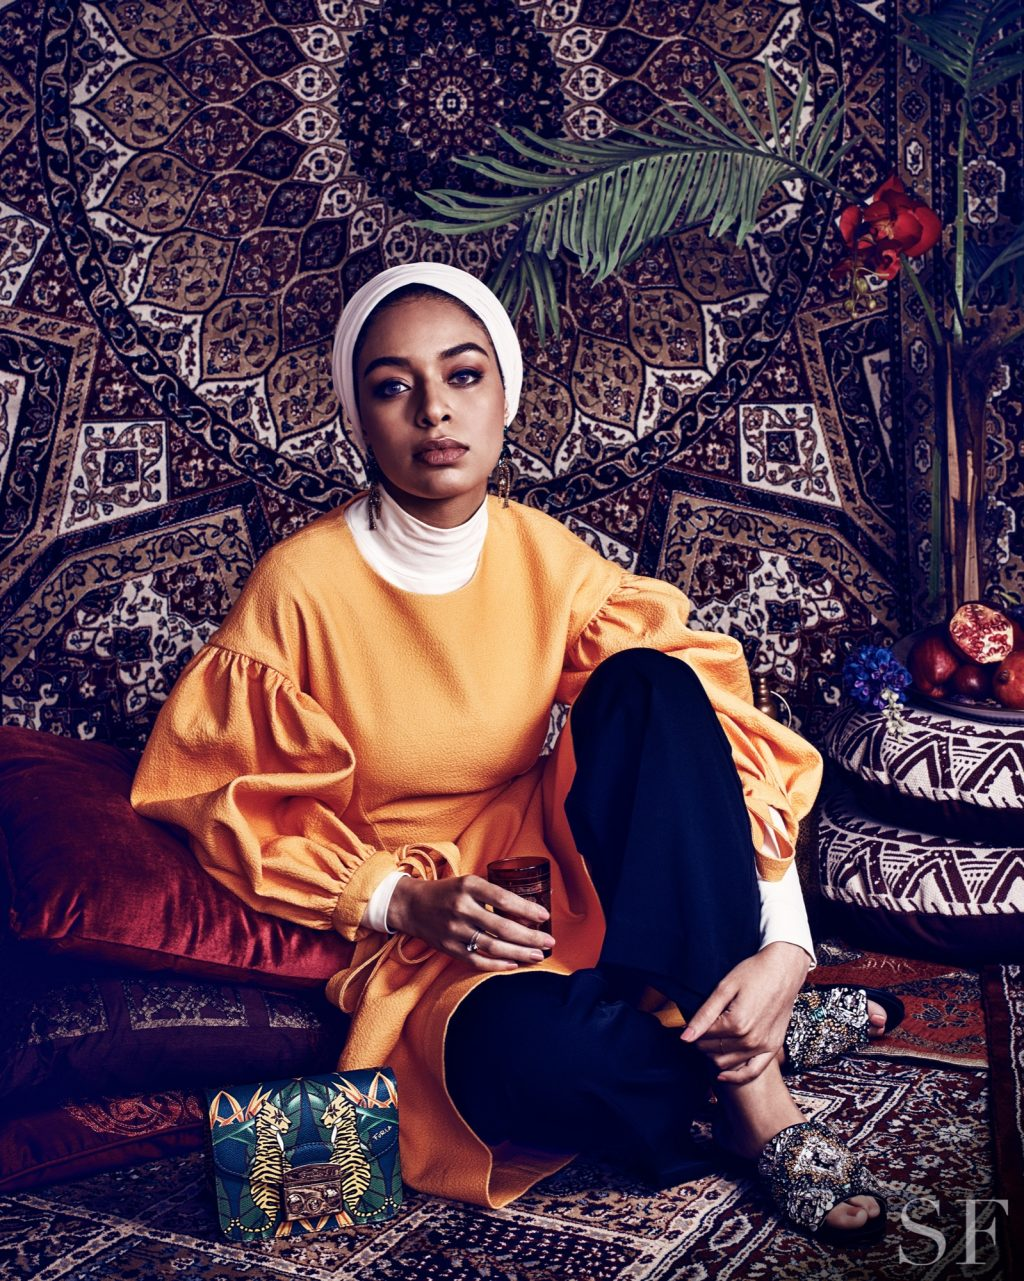 Why Has Modest Fashion Become a Movement? Savoir Flair Investigates